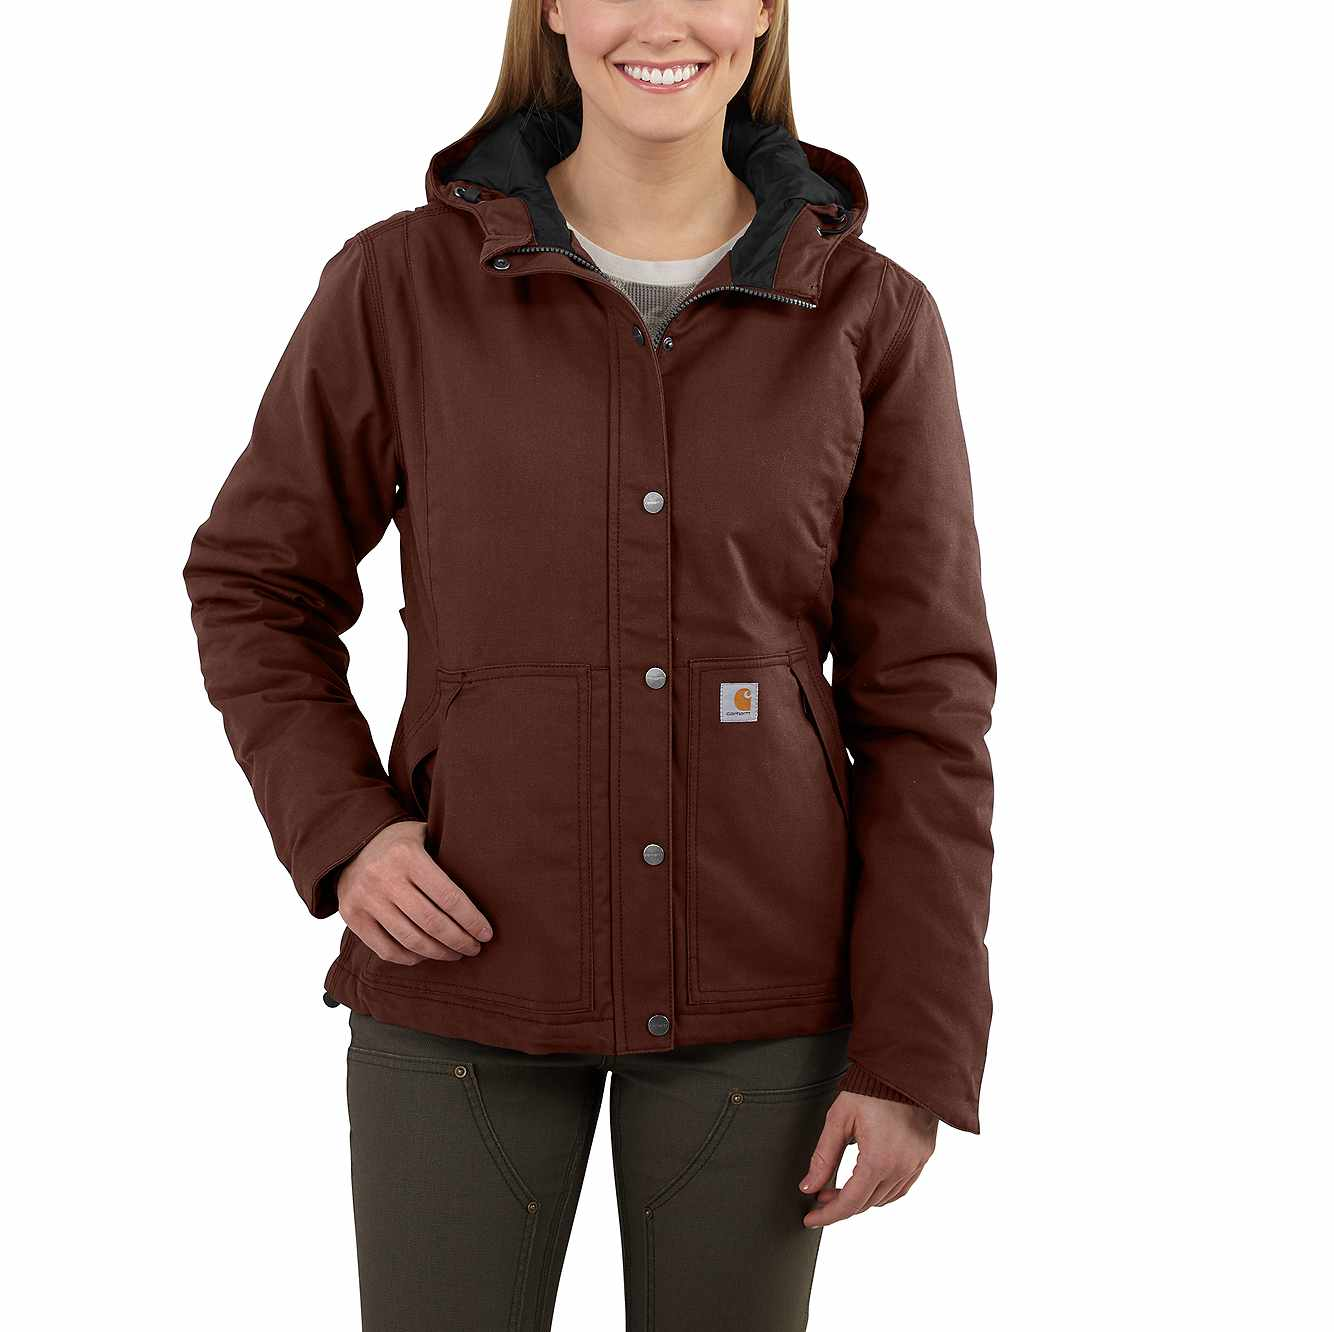 Picture of Full Swing® Cryder Jacket in Mineral Red